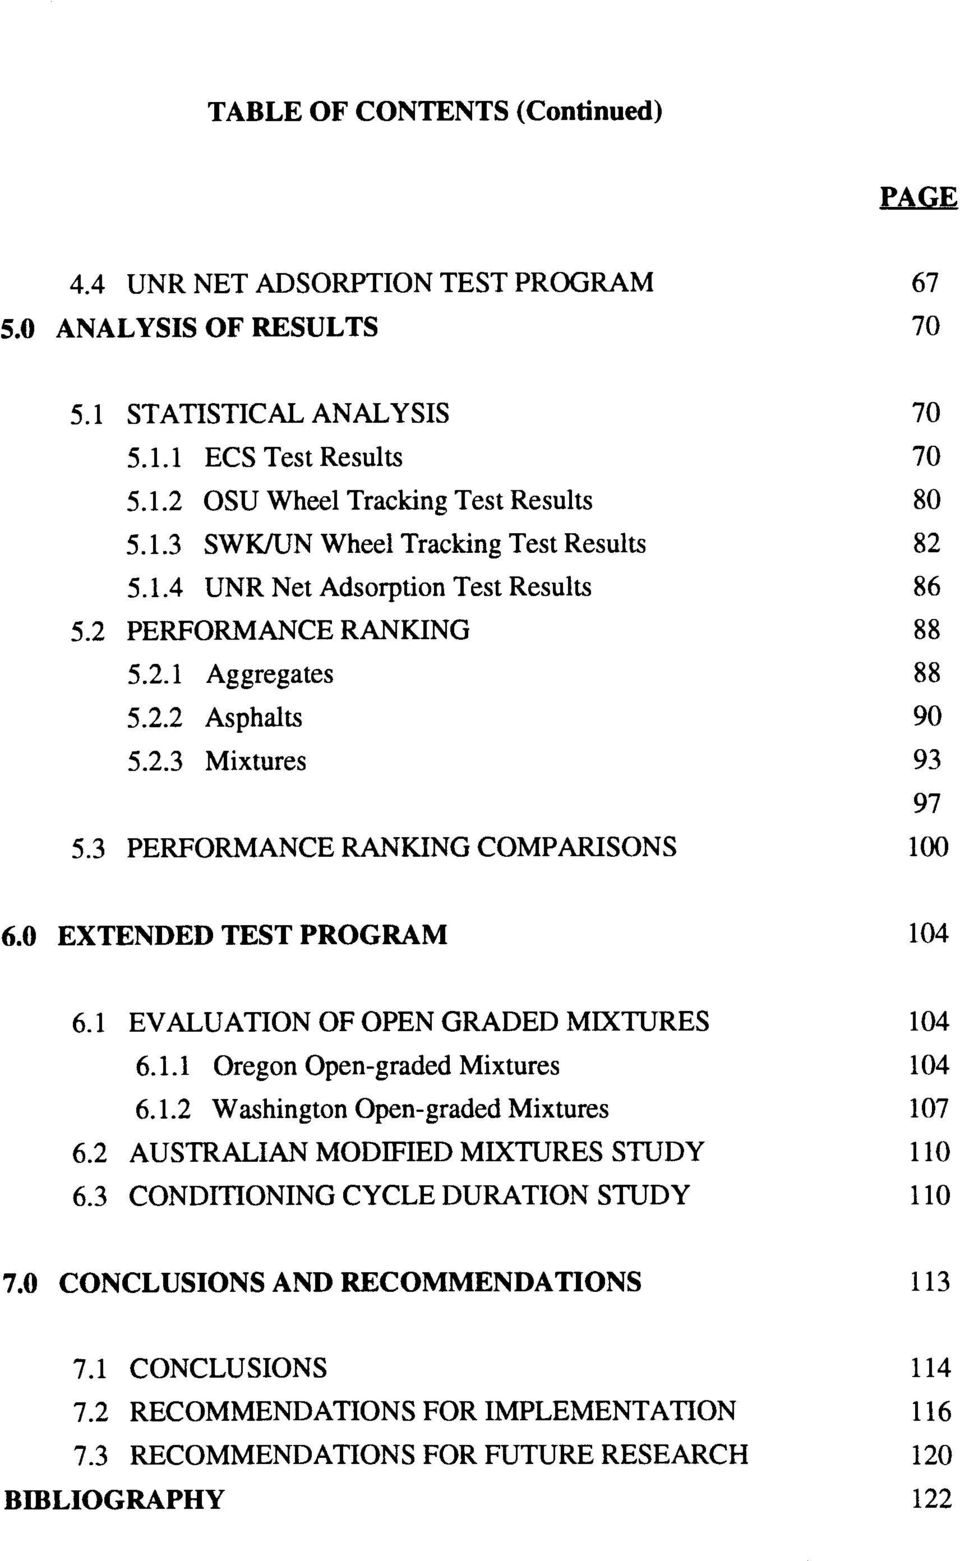 1 EVALUATION OF OPEN GRADED MIXTURES 104 6.1.1 Oregon Open-graded Mixtures 104 6.1.2 Washington Open-graded Mixtures 107 6.2 AUSTRALIAN MODIFIED MIXTURES STUDY 110 6.